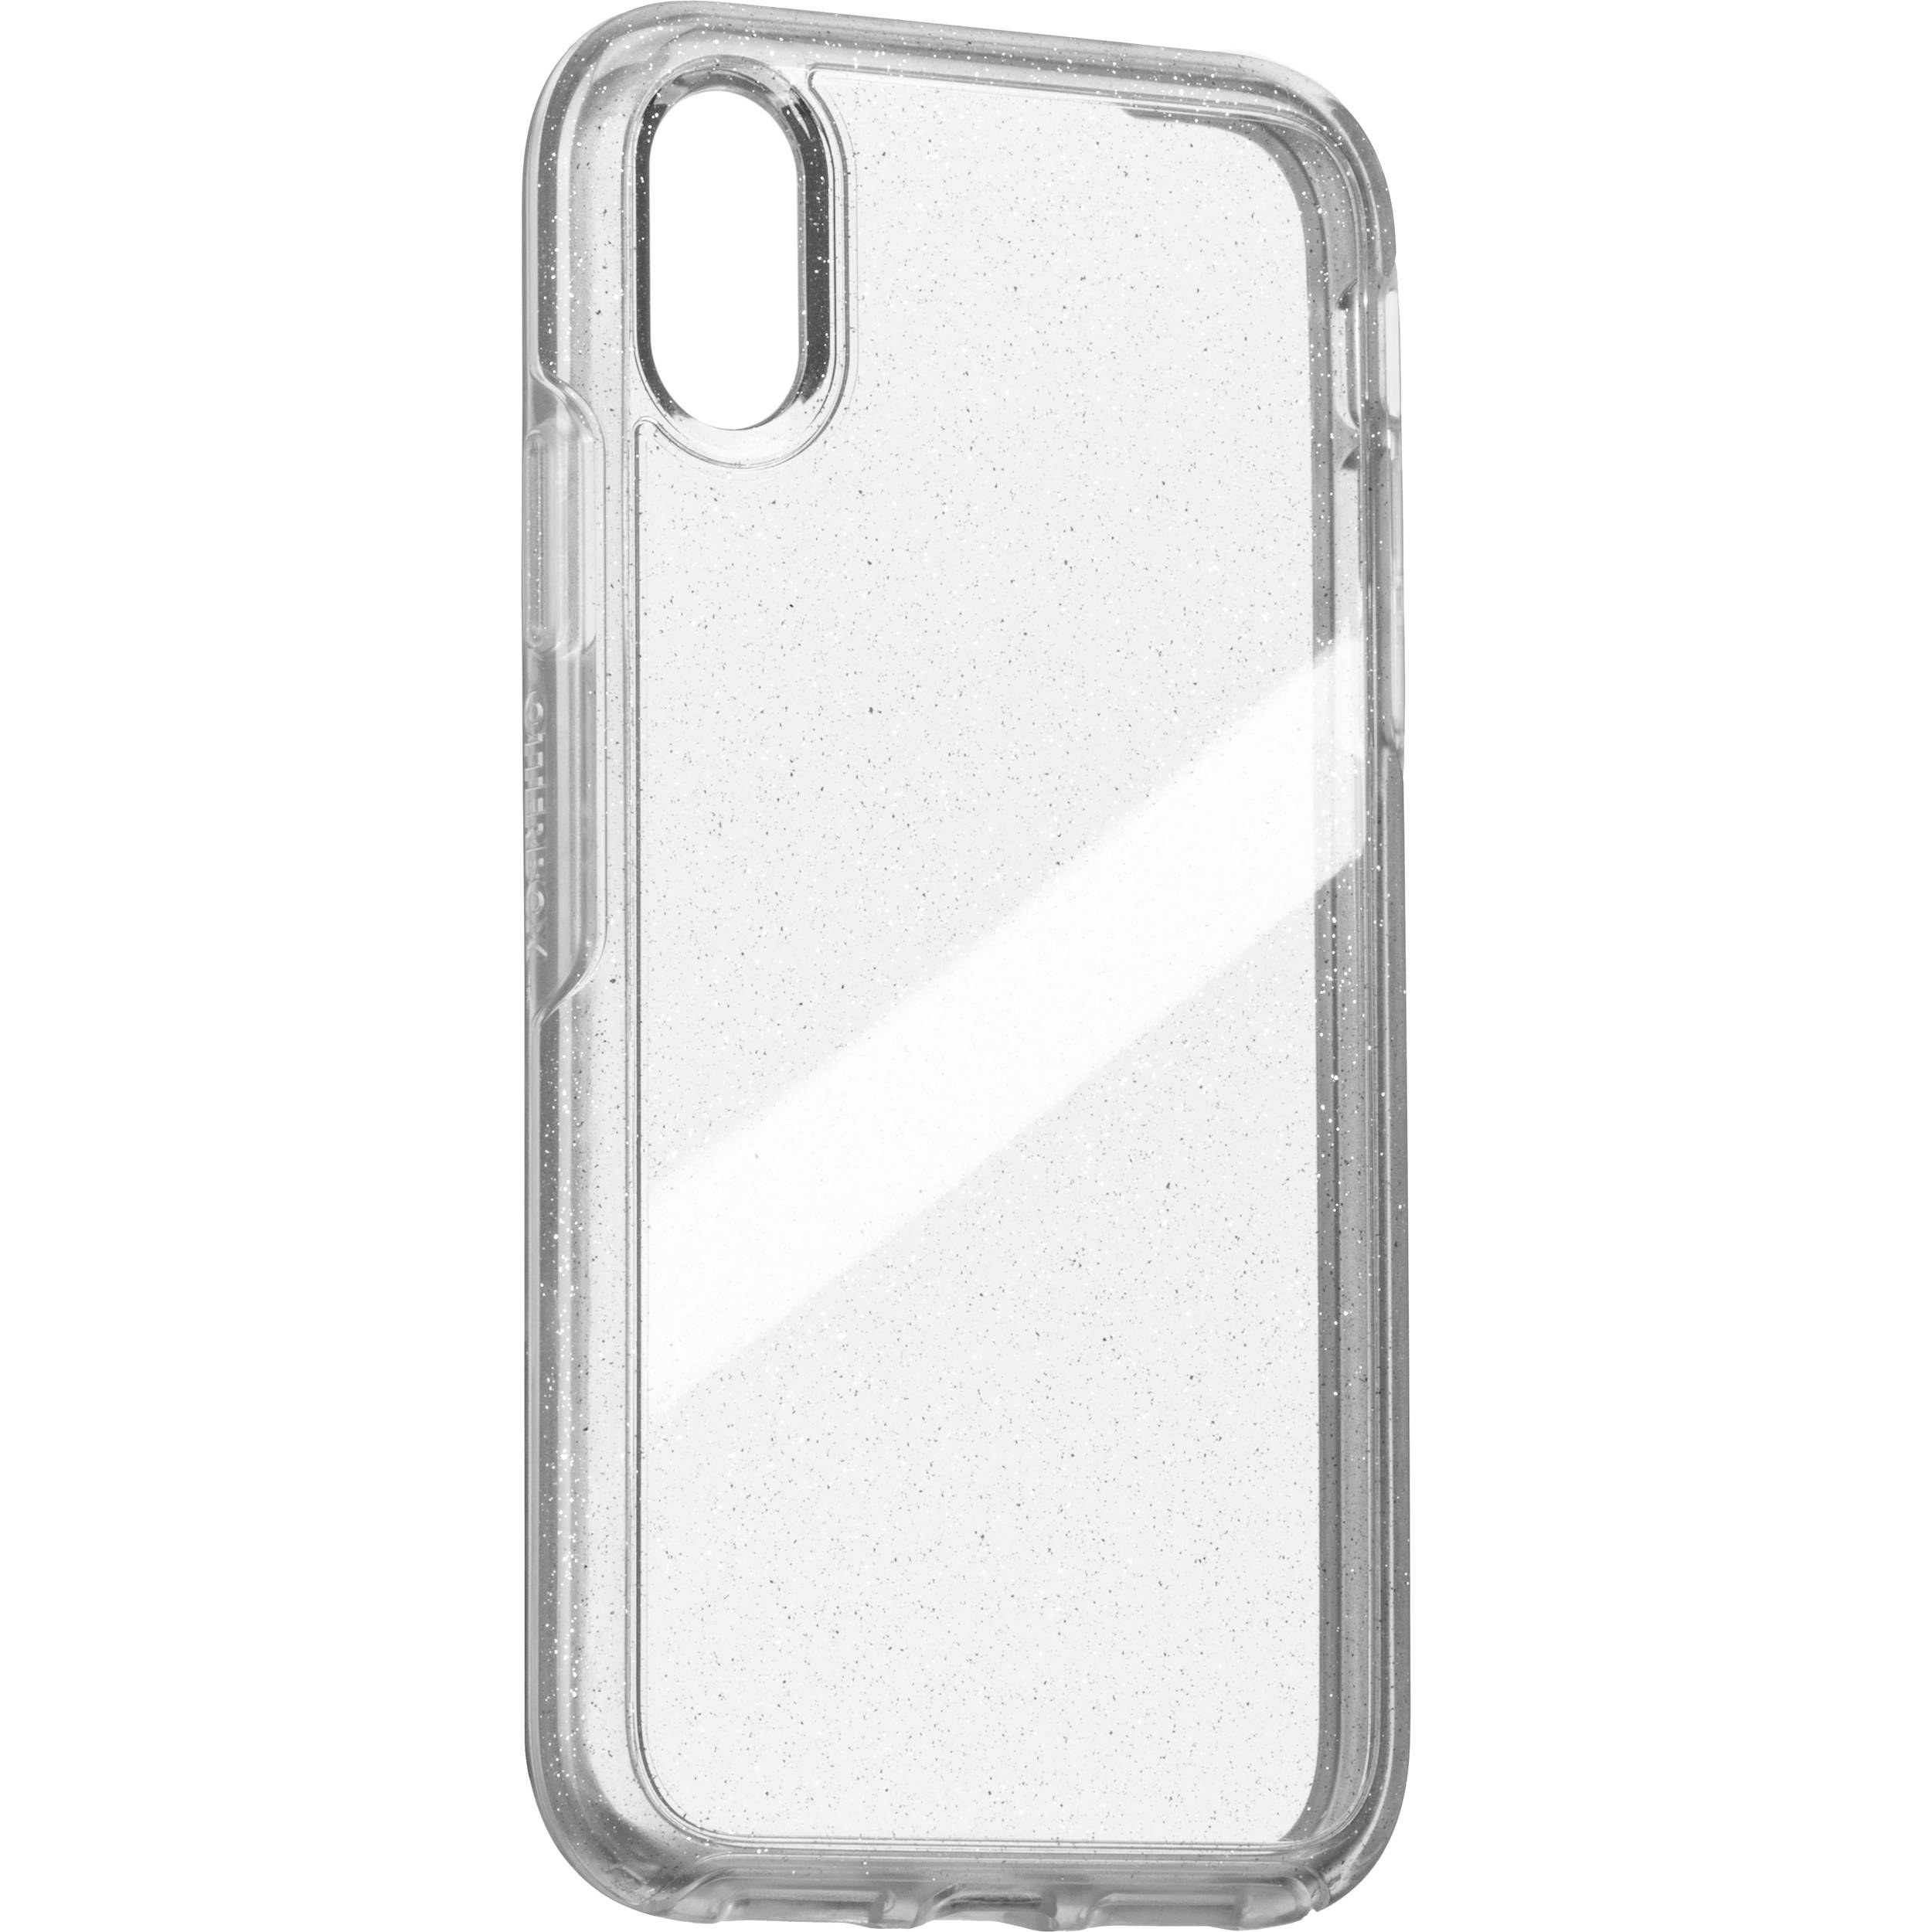 save off e948d 02a22 OtterBox Symmetry Series Clear Case for iPhone XR (Stardust)